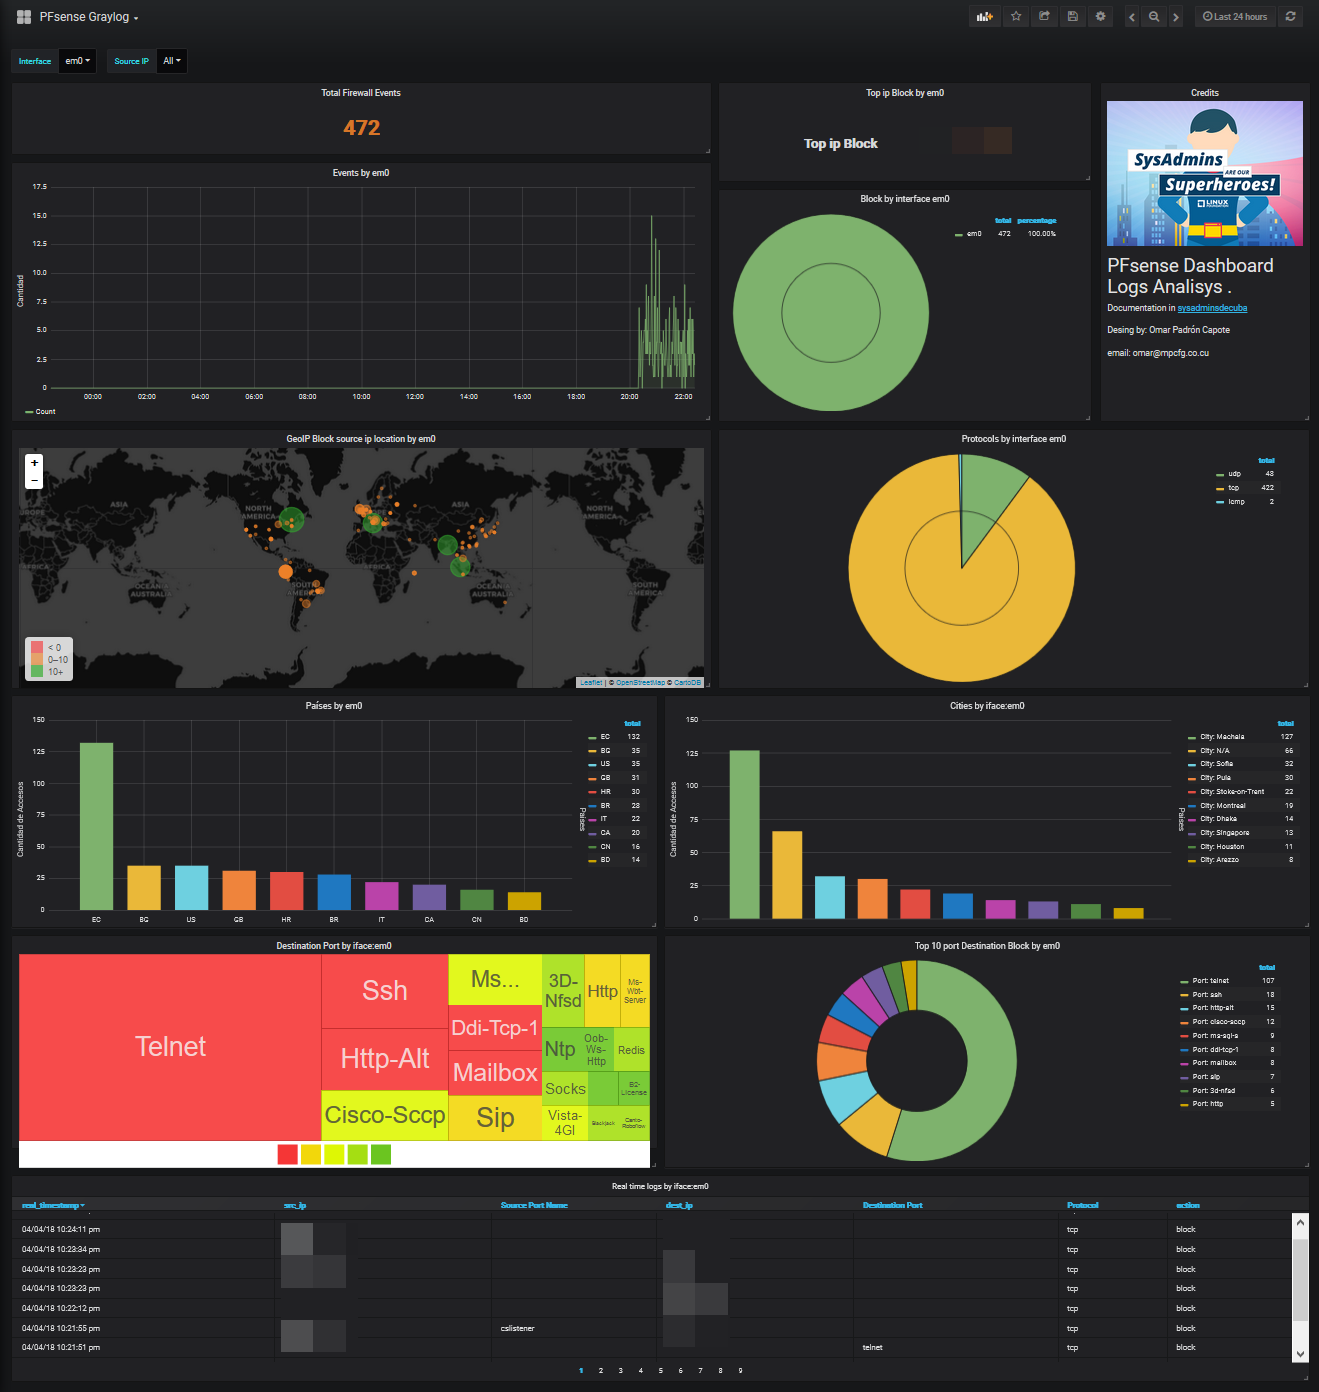 Dashboard in action